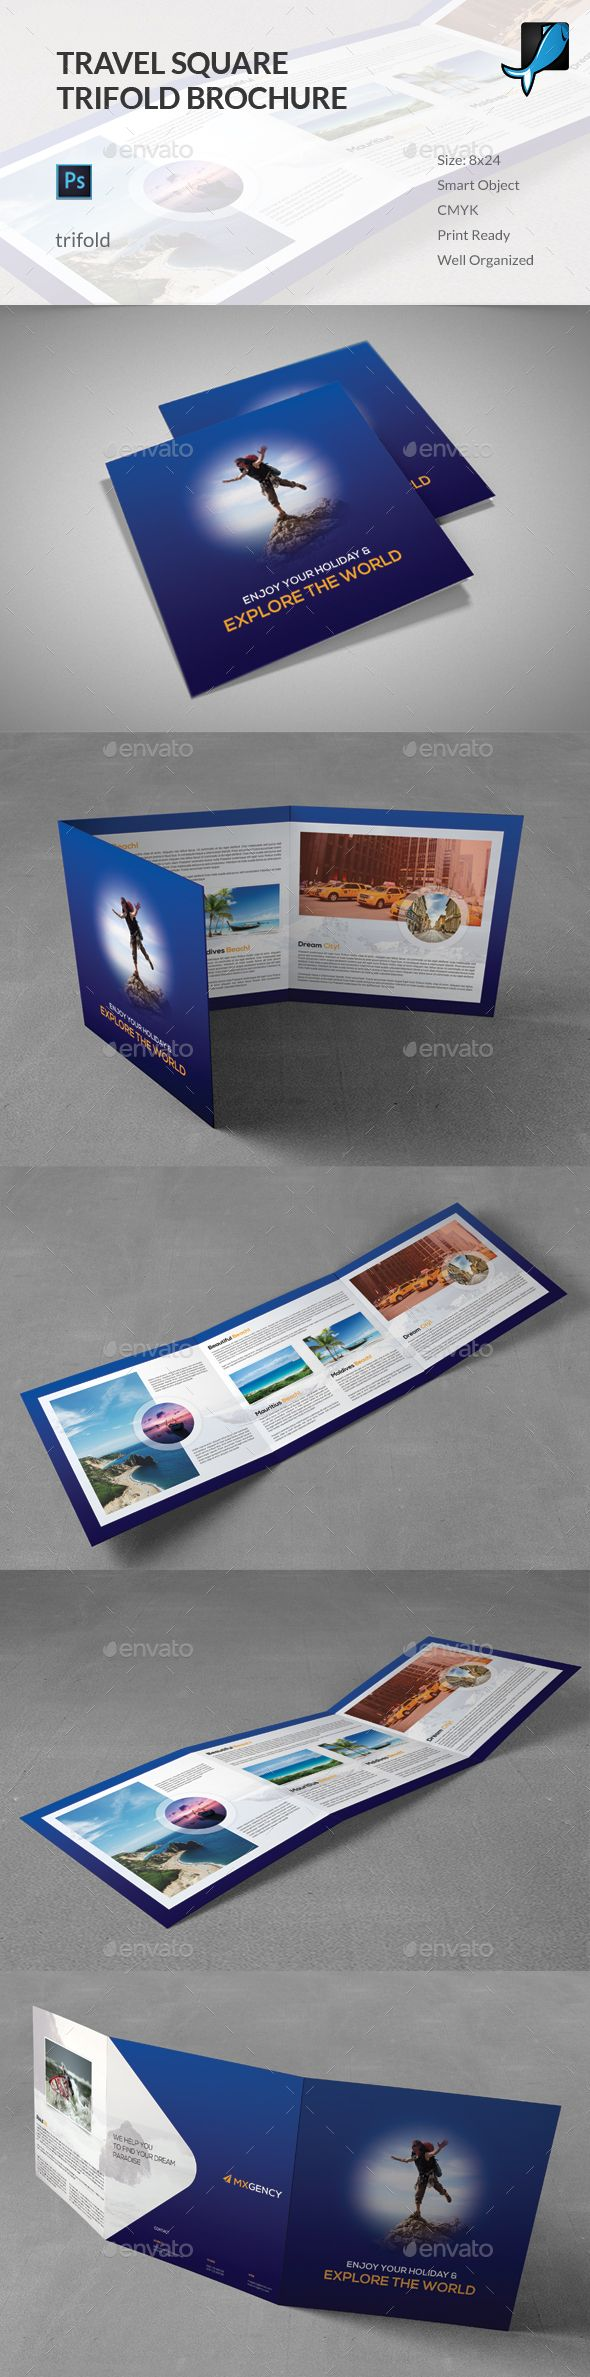 Travel Square Trifold Brochure Template PSD. Download here: http://graphicriver.net/item/travel-square-trifold-brochure/15808556?ref=ksioks